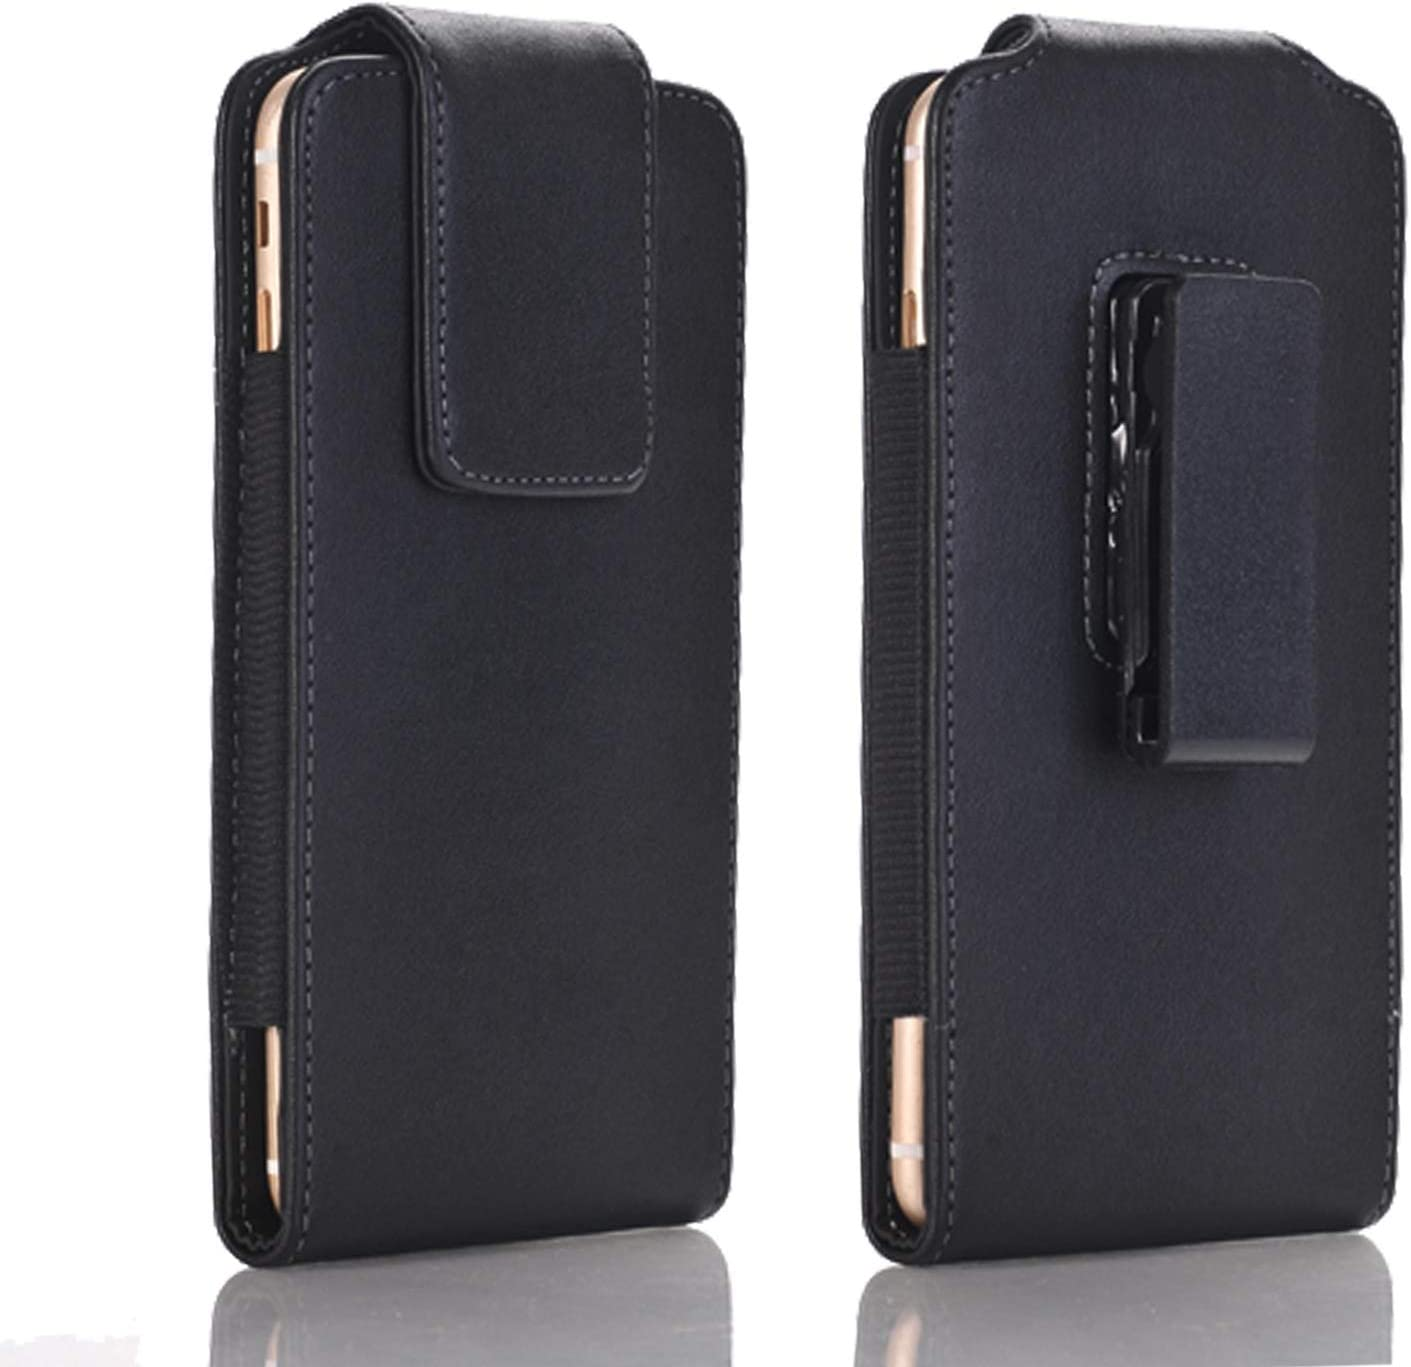 HAIJUN Mobile Phone Holsters Men Leather Belt Clip Holster Pouch Case for iPhone XR, 11, Cellphone Pouch Case Cover,Magnetic Flap Sleeves